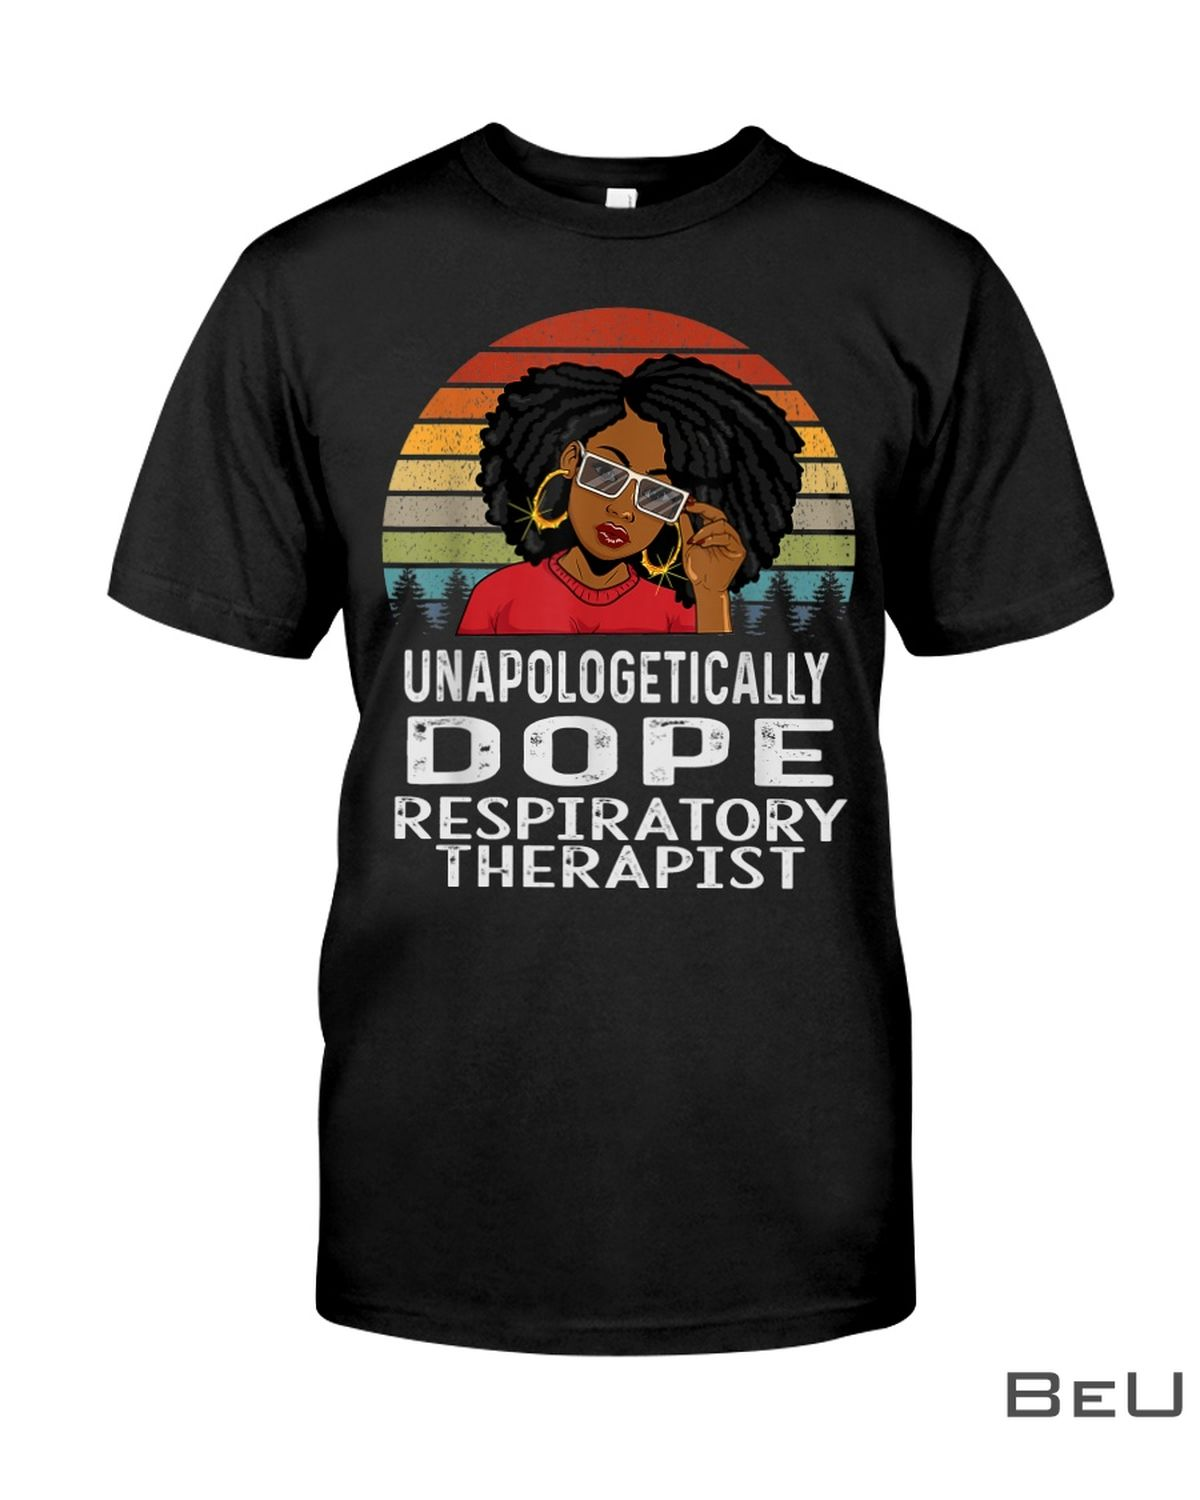 Unapologetically Respiratory Therapist Black Girl Shirt, hoodie, tank top